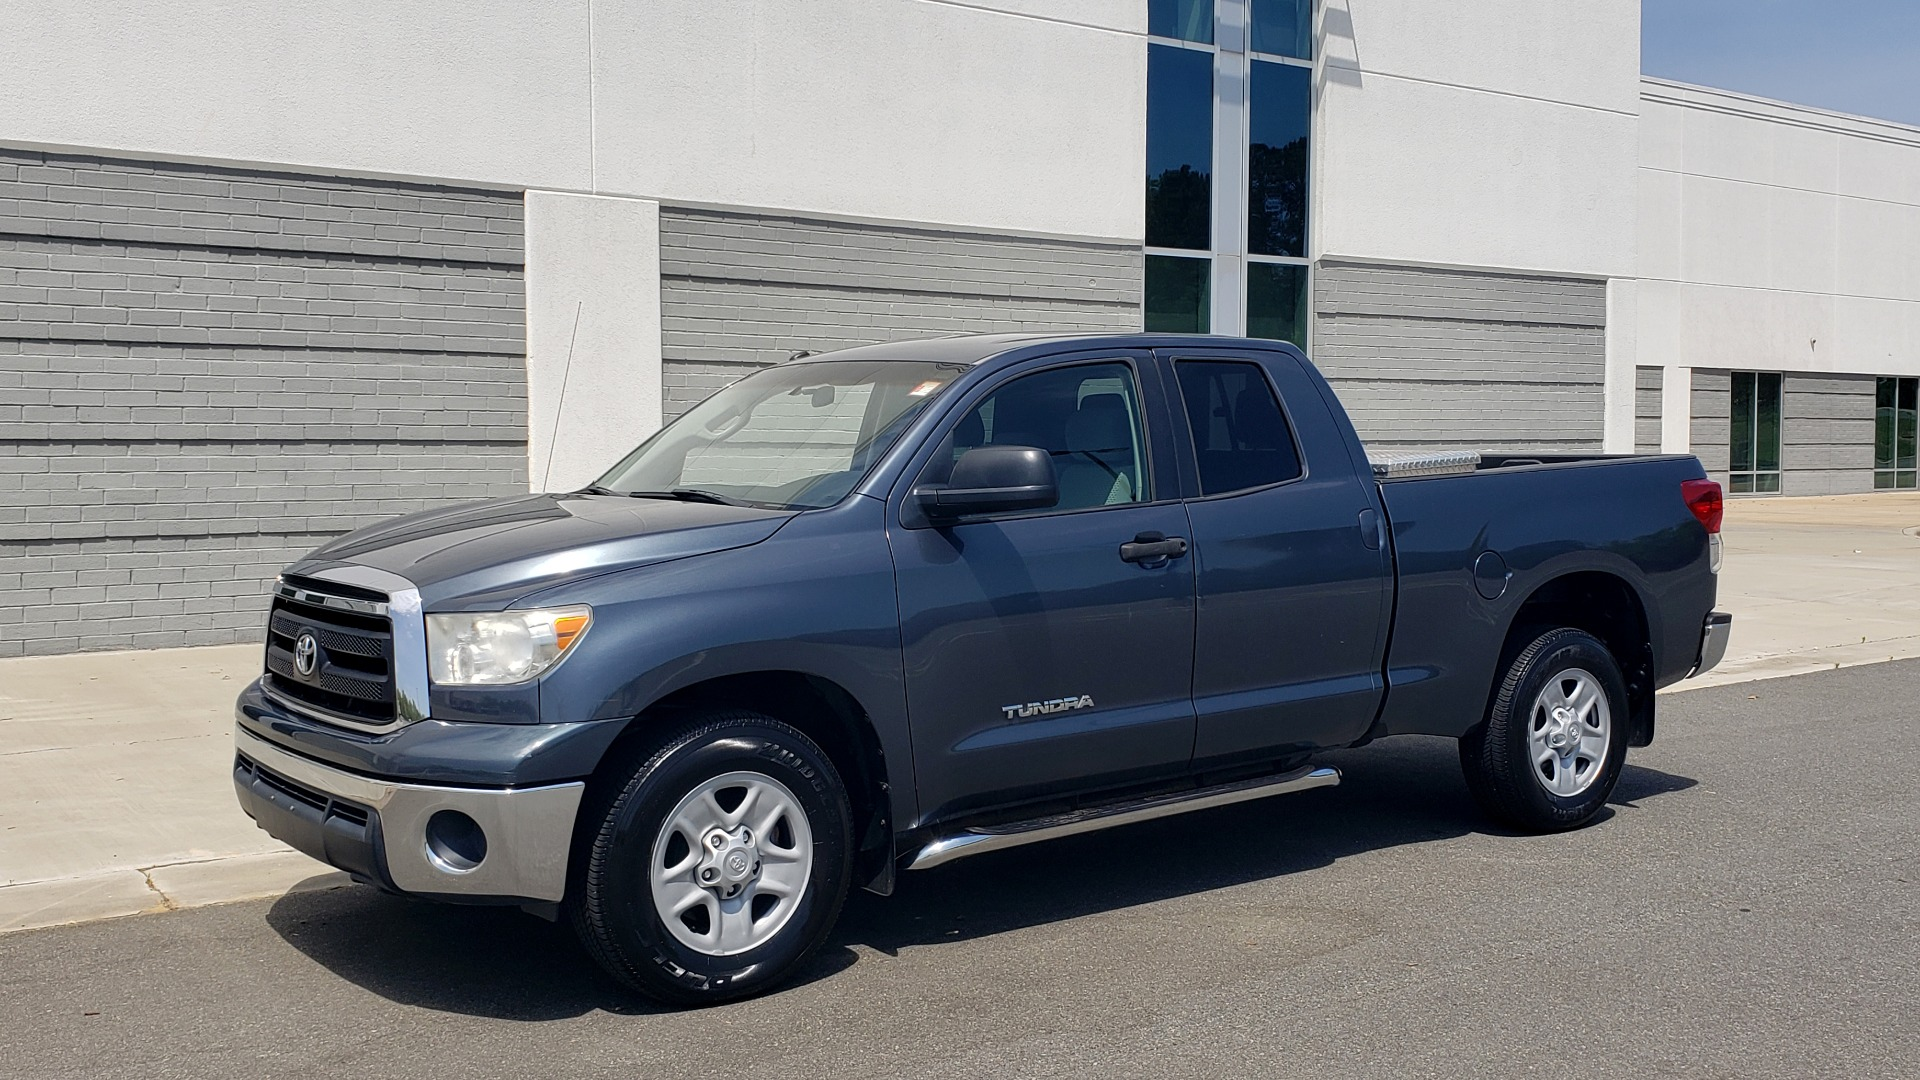 Used 2010 Toyota TUNDRA DOUBLECAB 4X4 / 4.6L V8 / 6-SPD AUTO / TOW PKG / 18IN WHEELS for sale $17,995 at Formula Imports in Charlotte NC 28227 3